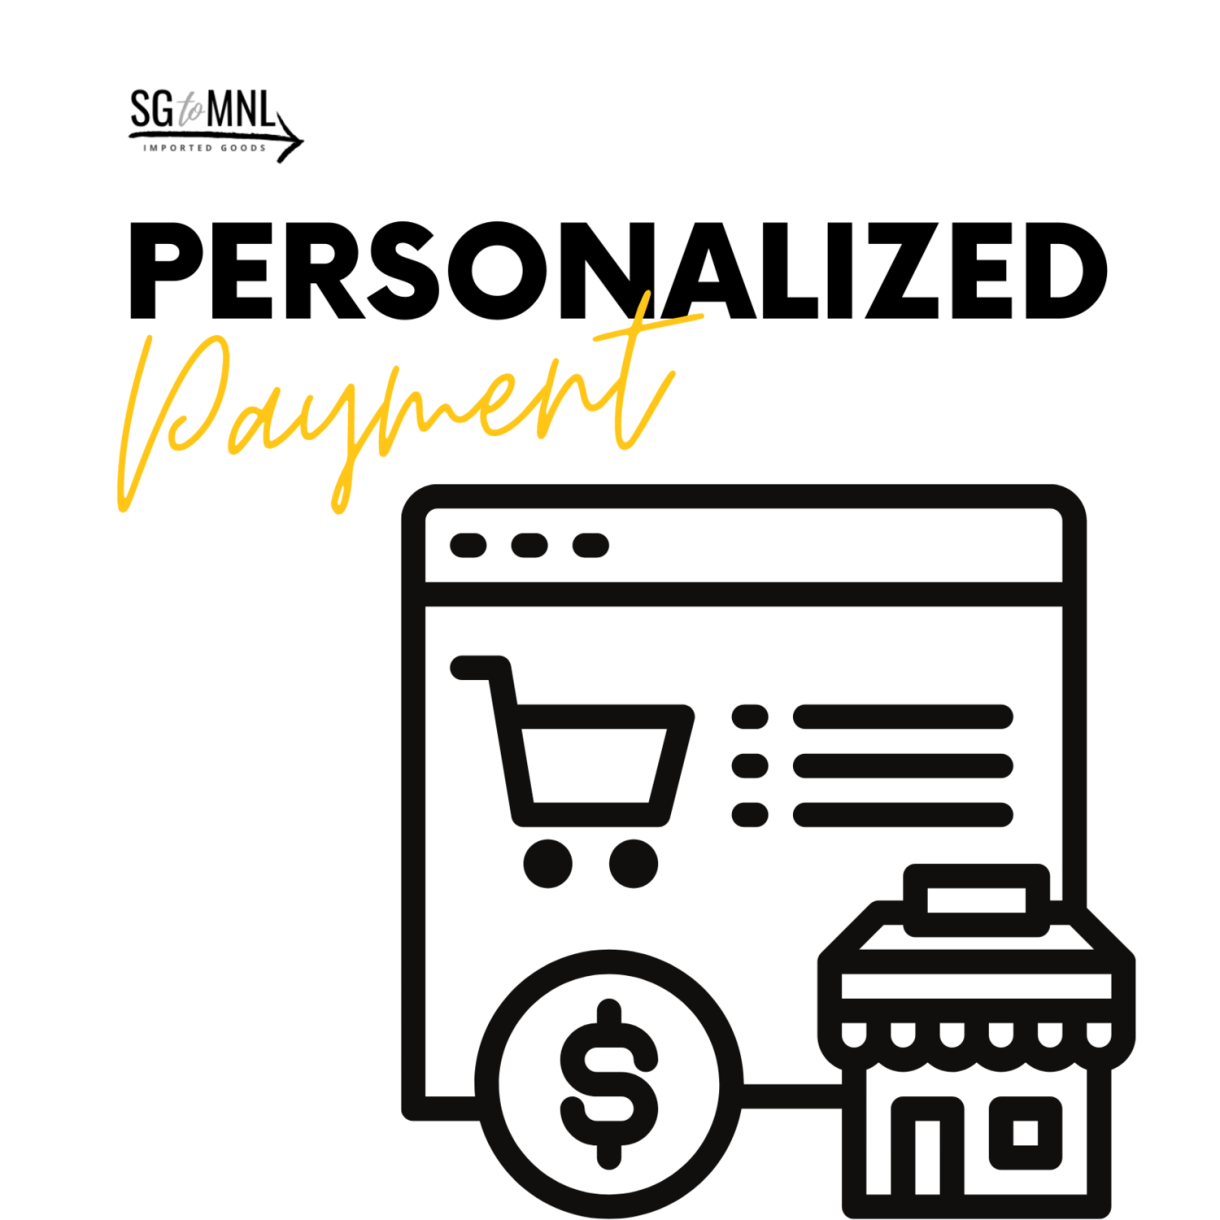 PERSONALIZED PAYMENT